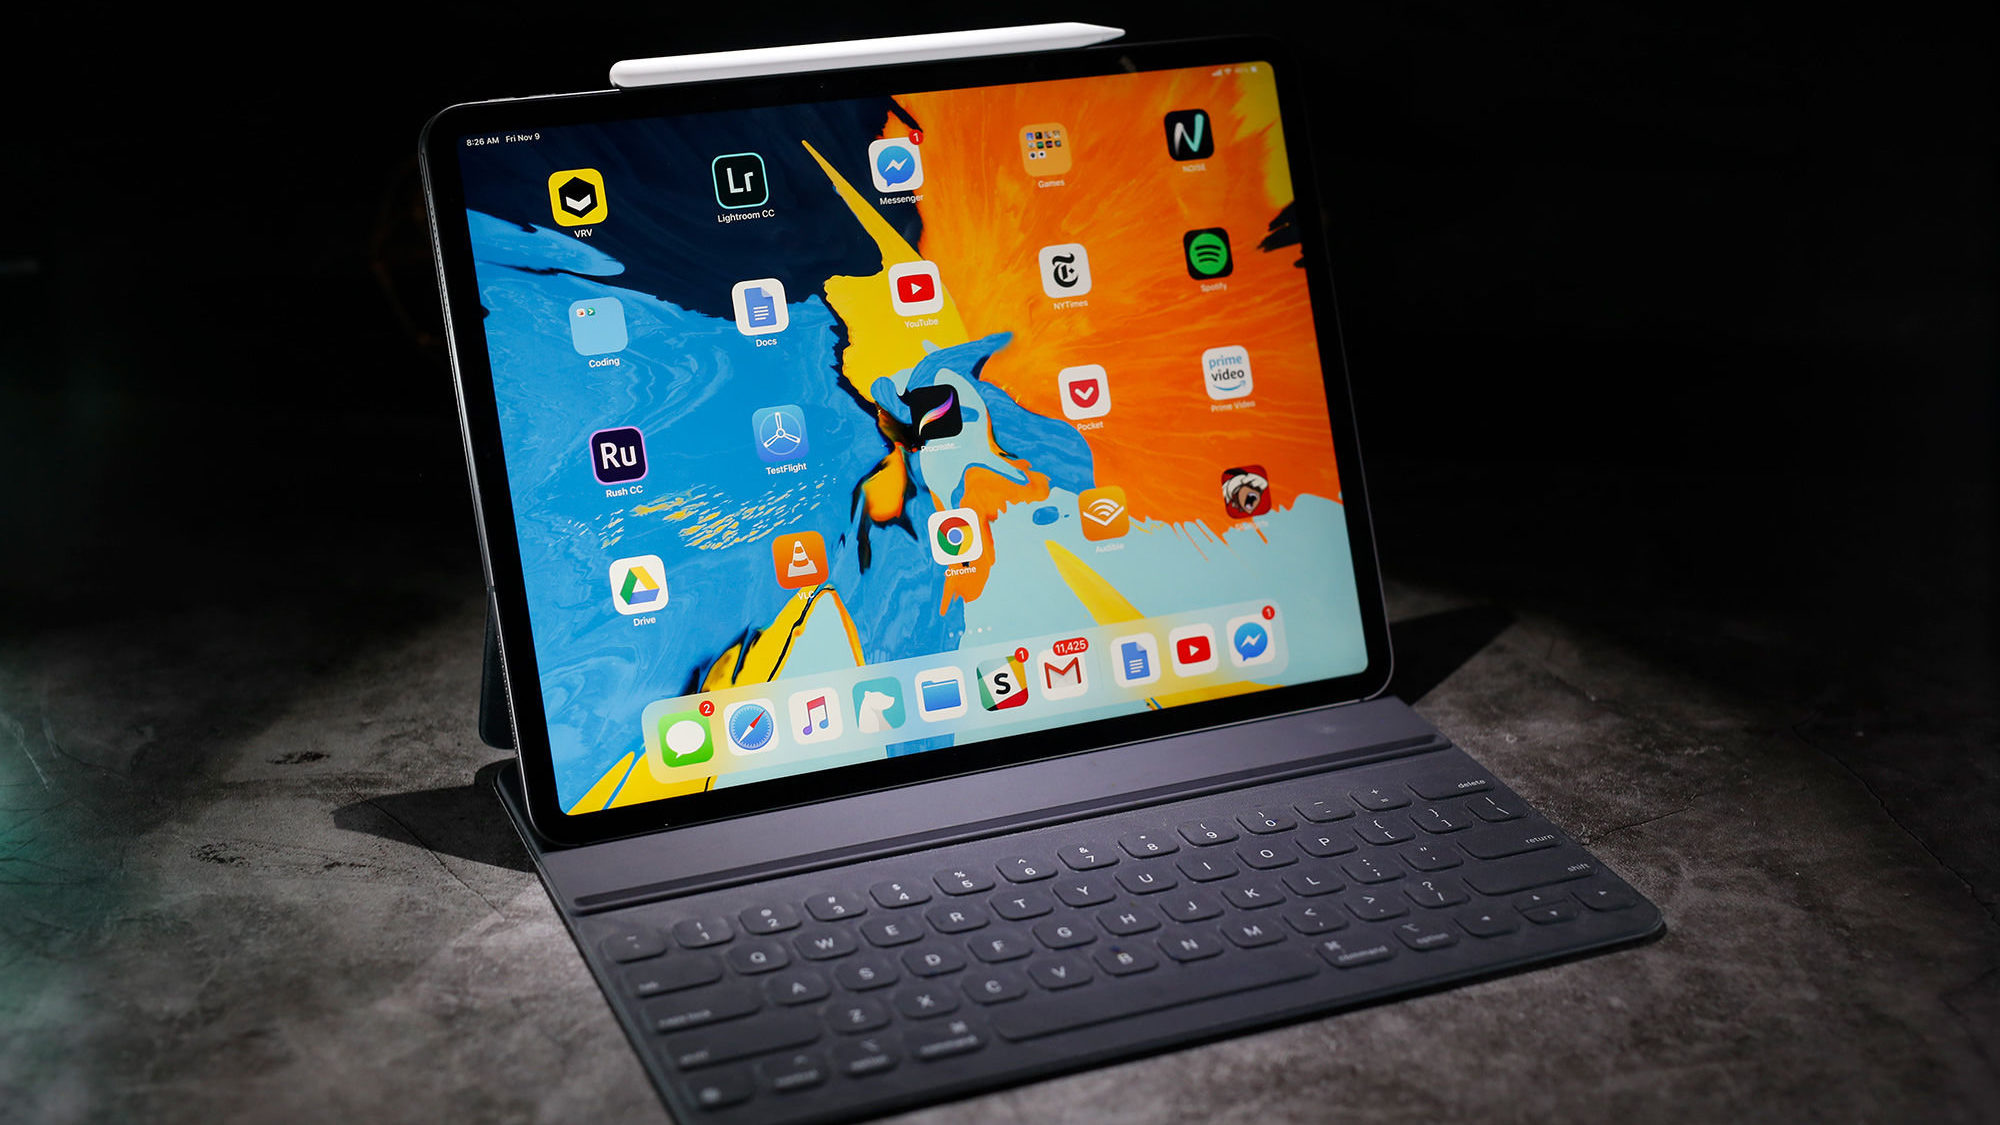 Apple iPad Pro Review and Buy Guide Purchase it Now or Wait for 2020 iPad Pro